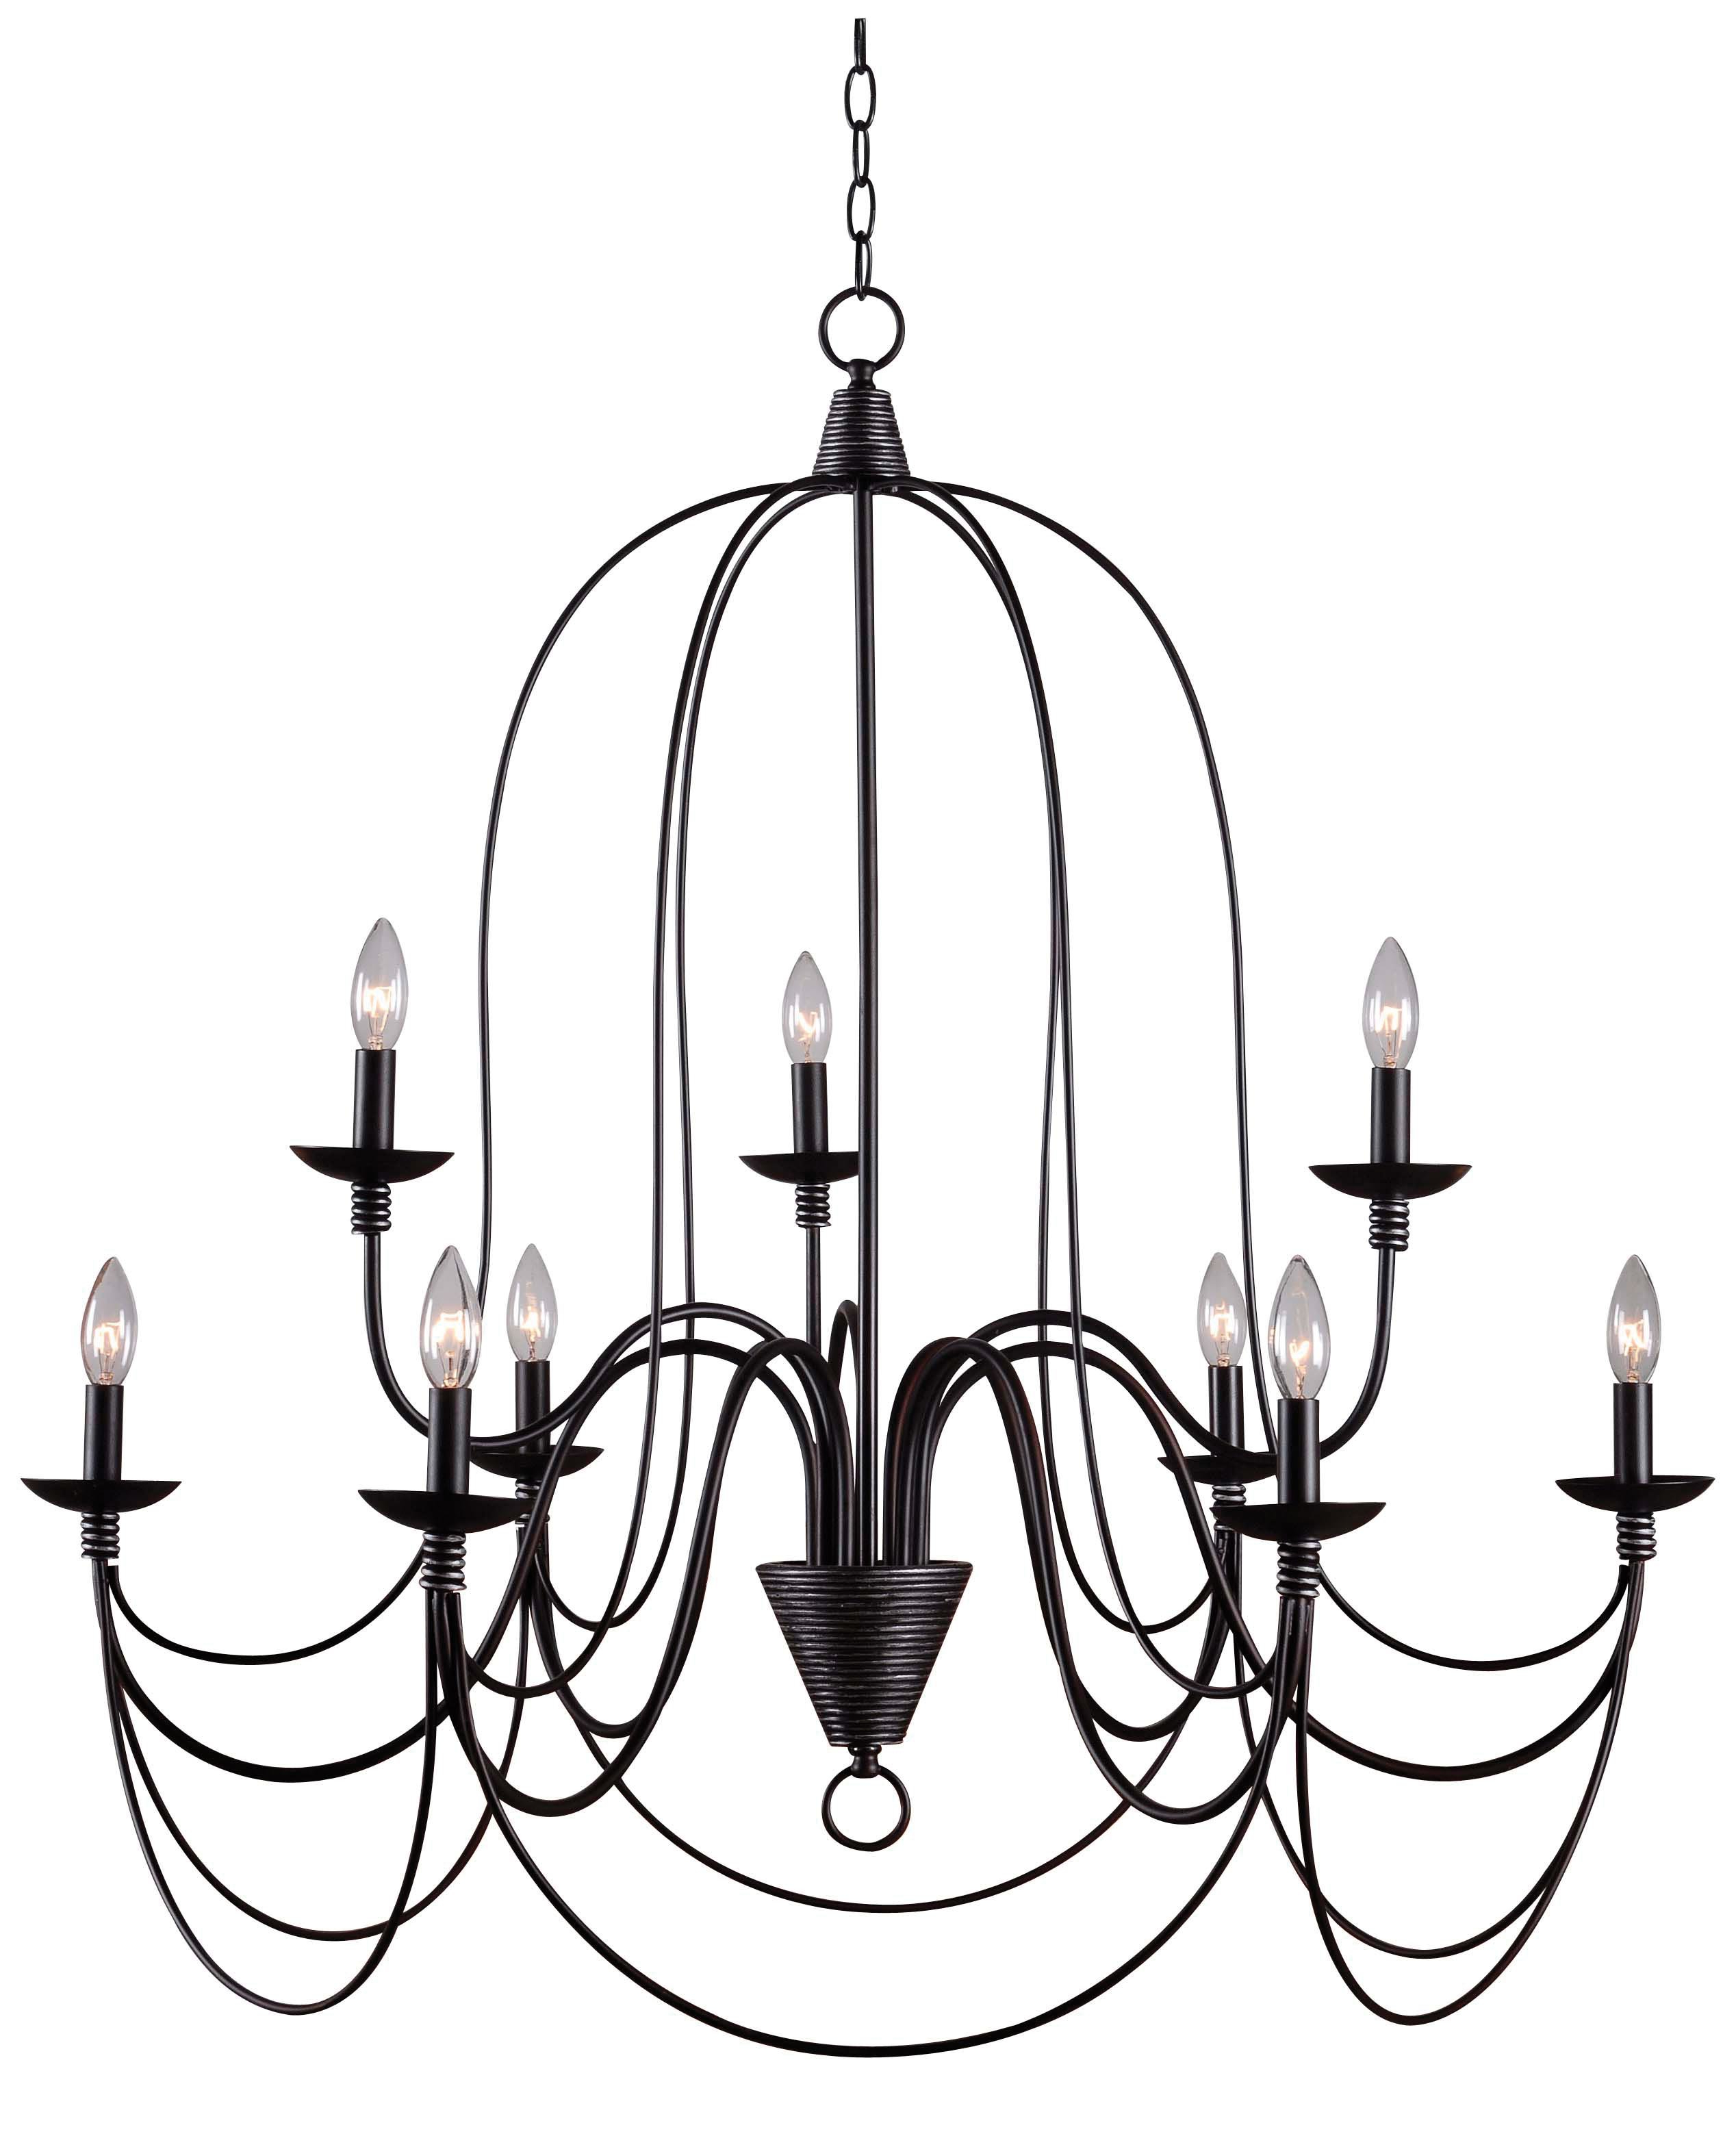 Kollman 9 Light Candle Style Chandelier In Latest Giverny 9 Light Candle Style Chandeliers (View 6 of 25)